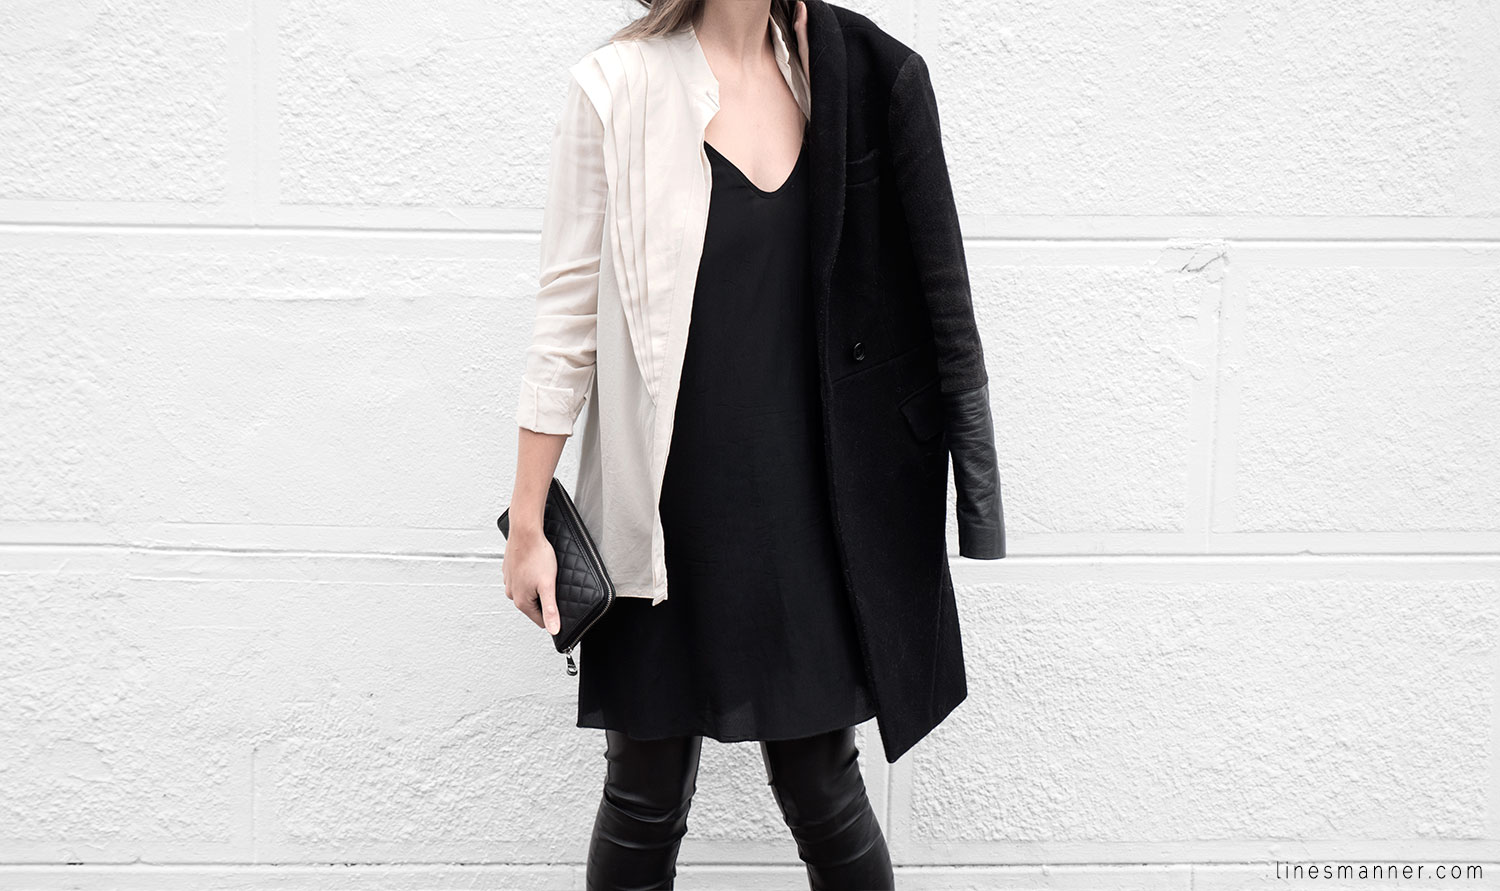 Lines-Manner-Timeless-Comfort-Essentials-Monochrome-Trend-Minimal-Textures-Fall-Leather-Details-Simplicity-Modern-Basics-Outfit-Structure-Relaxed-Leather-Luxurious-Sophistication-3